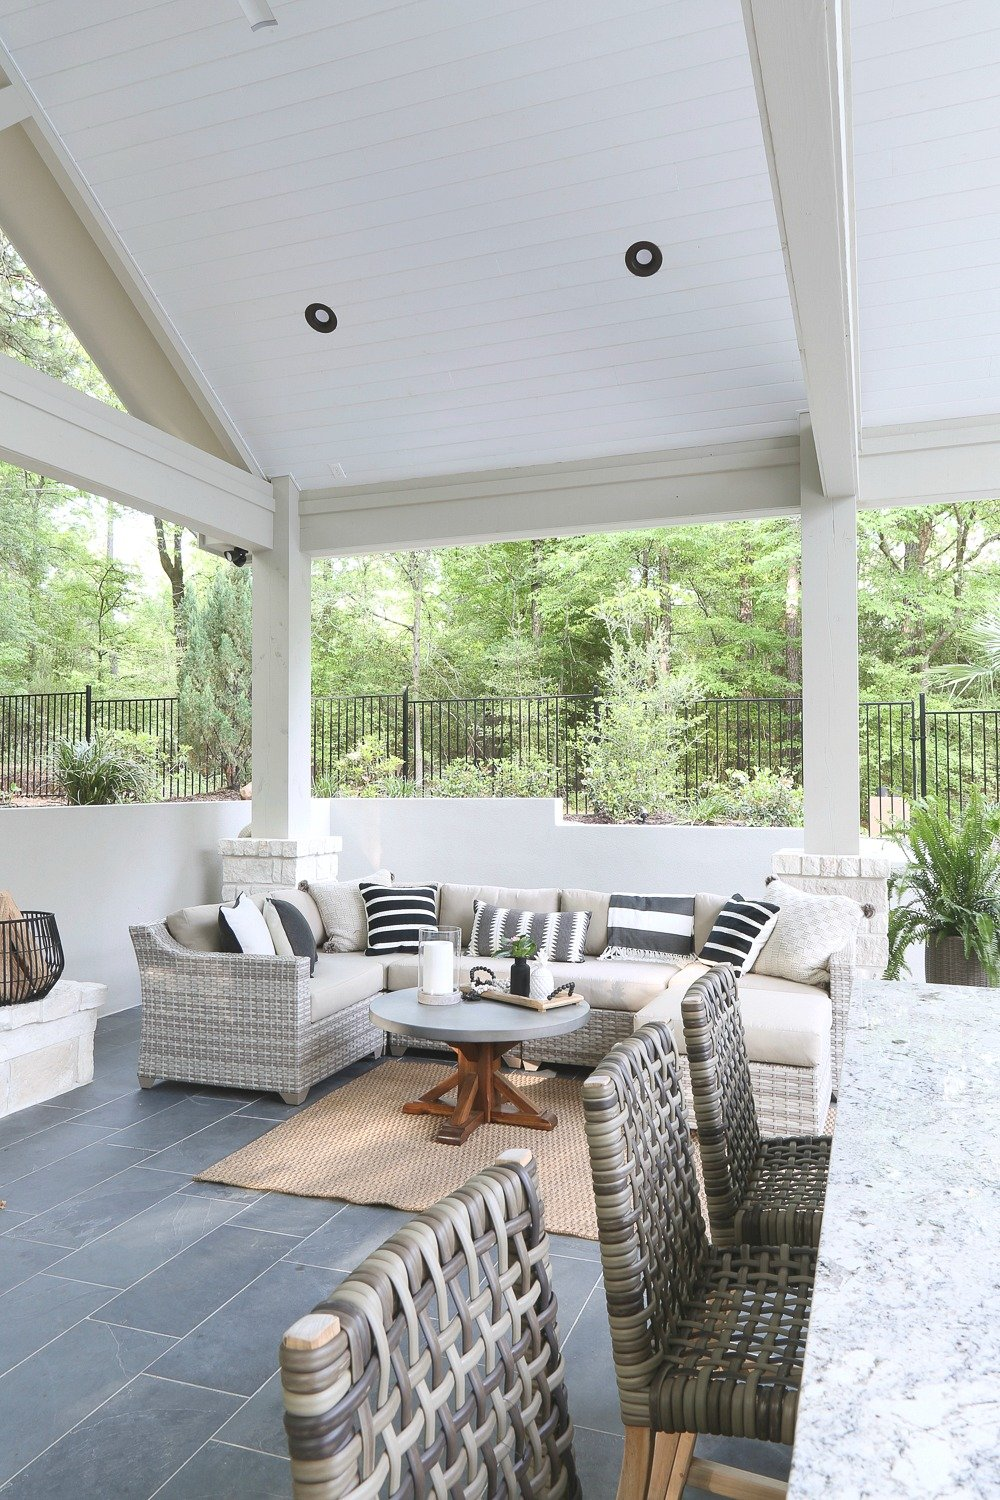 Pool House and Patio Furniture and Decor